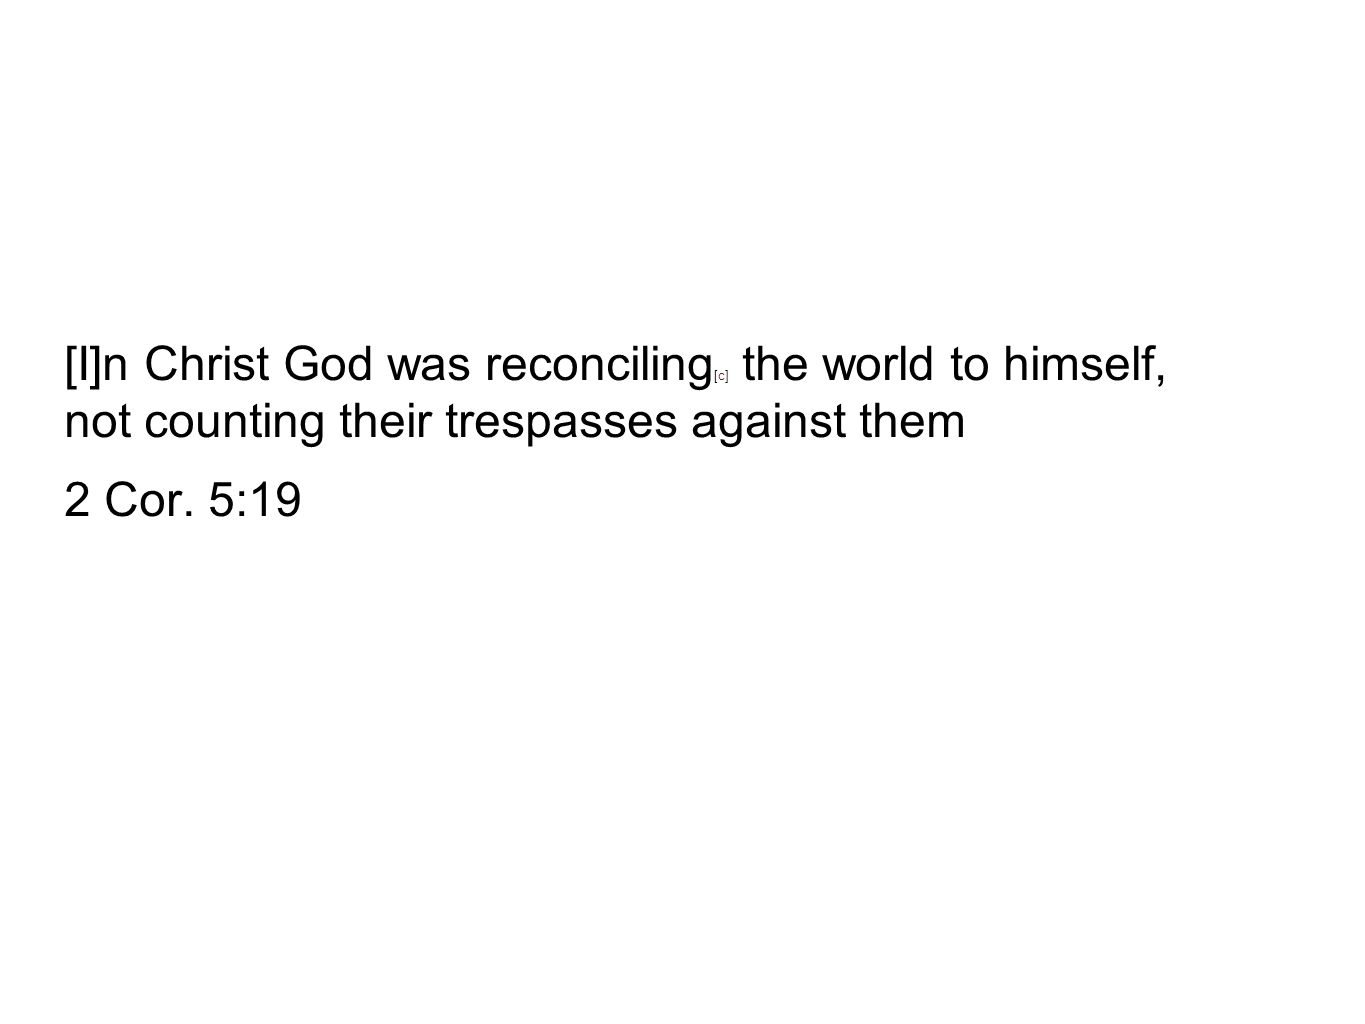 [I]n Christ God was reconciling[c] the world to himself, not counting their trespasses against them